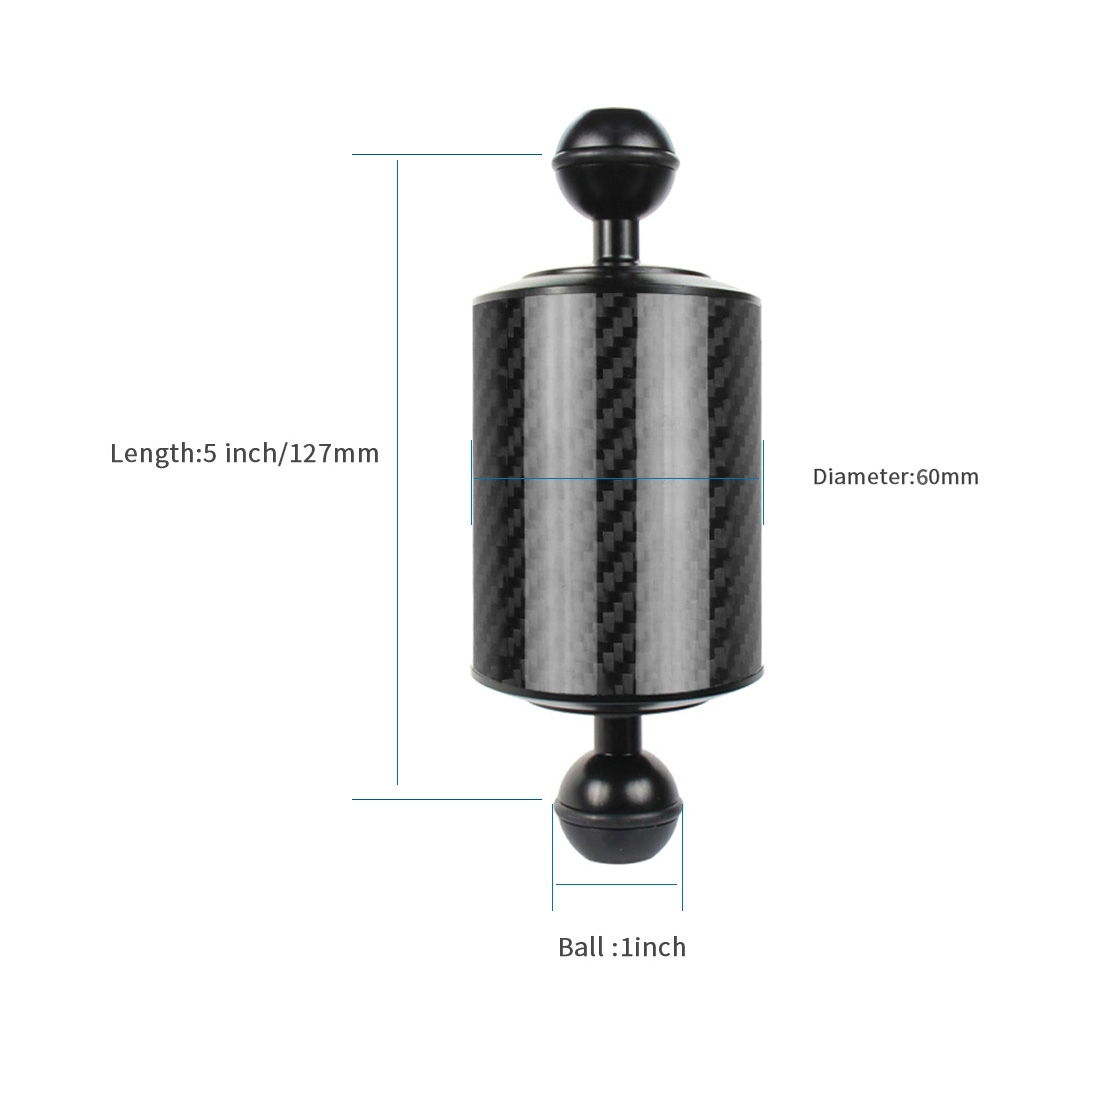 Carbon Fiber Extension Tray Arm Float Buoyancy Aquatic Arm Dual Ball SLR Camera Diving for Gopro yi EKEN for DJI for OSMO Action 23